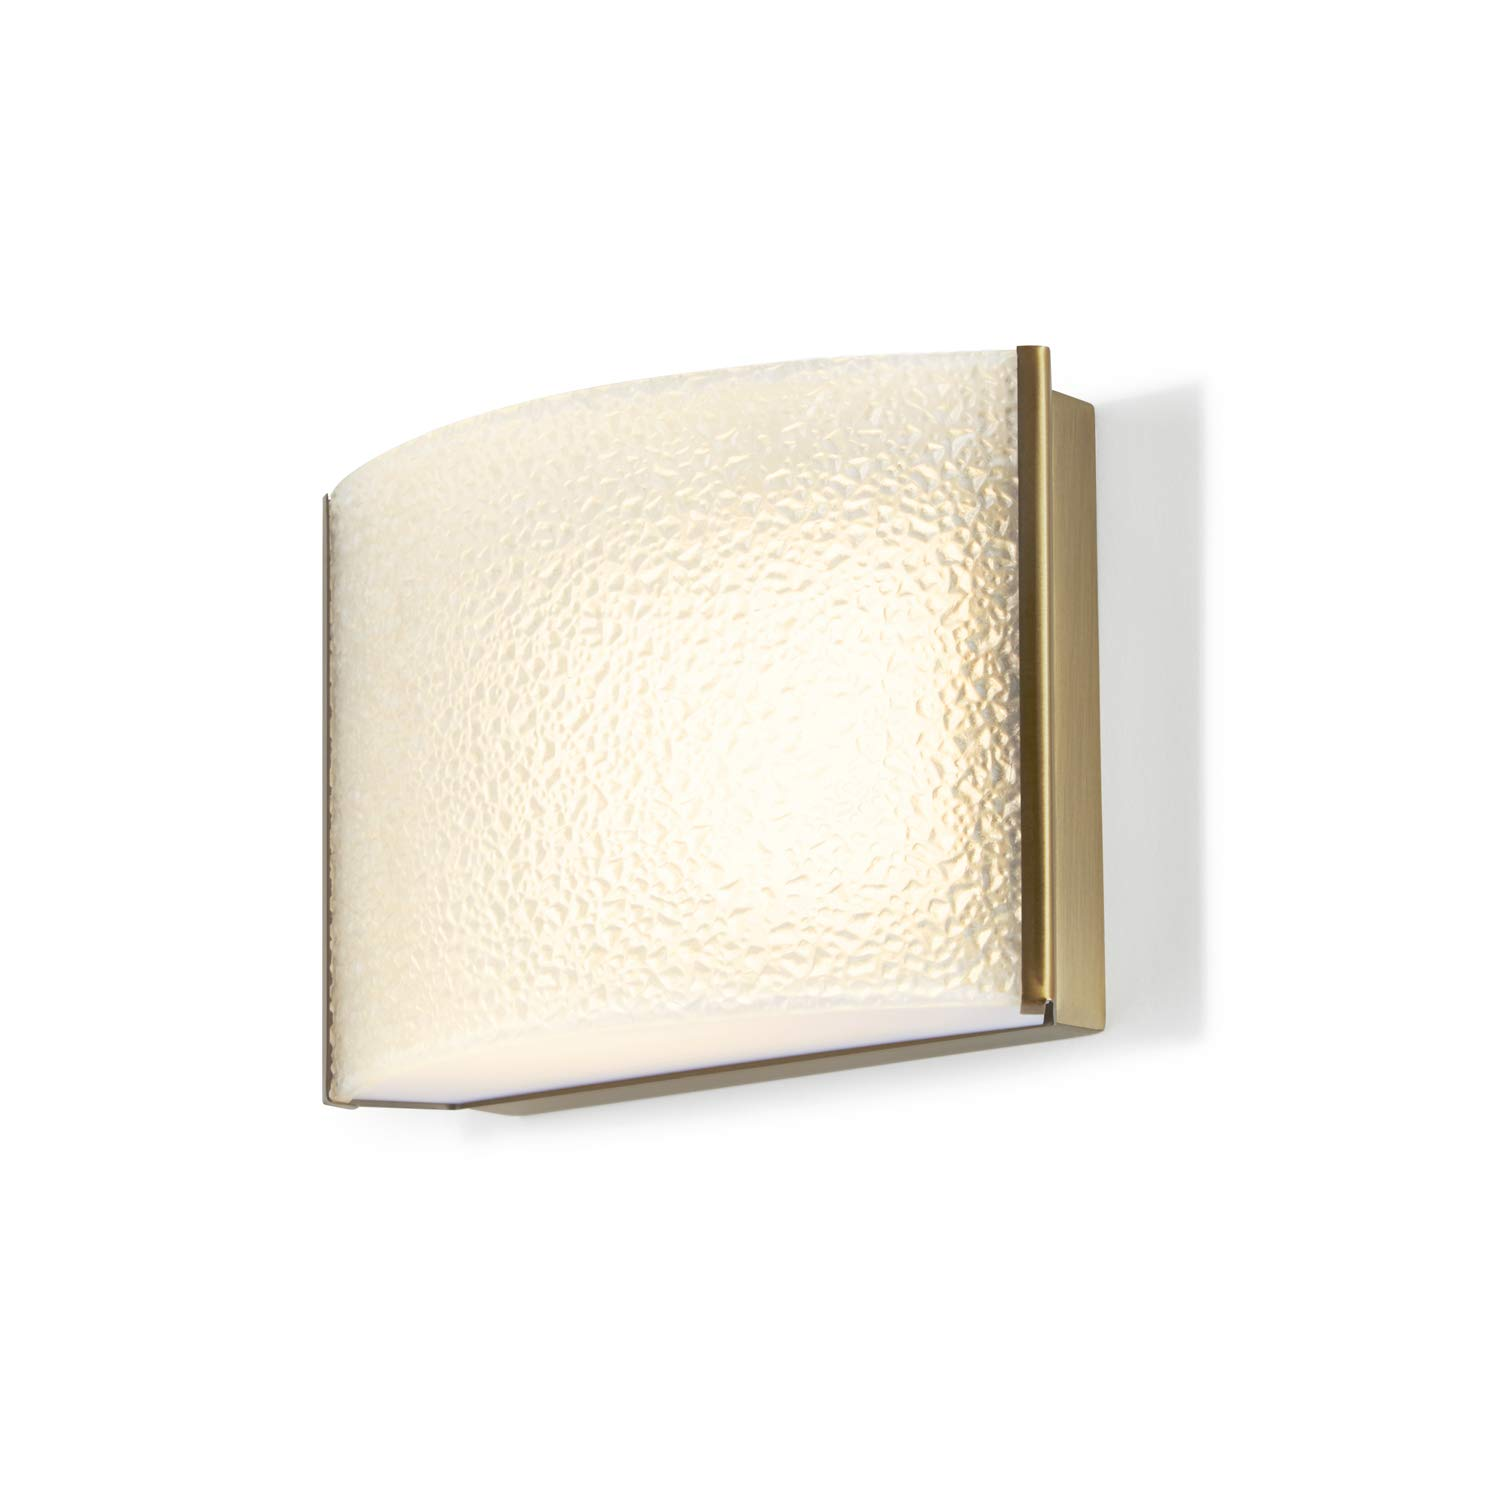 1 Light Vanity Bathroom Sconce - Brass Metal Finish Fixture, Textured Water Glass, Hardwire, Damp Located - ETL Listed